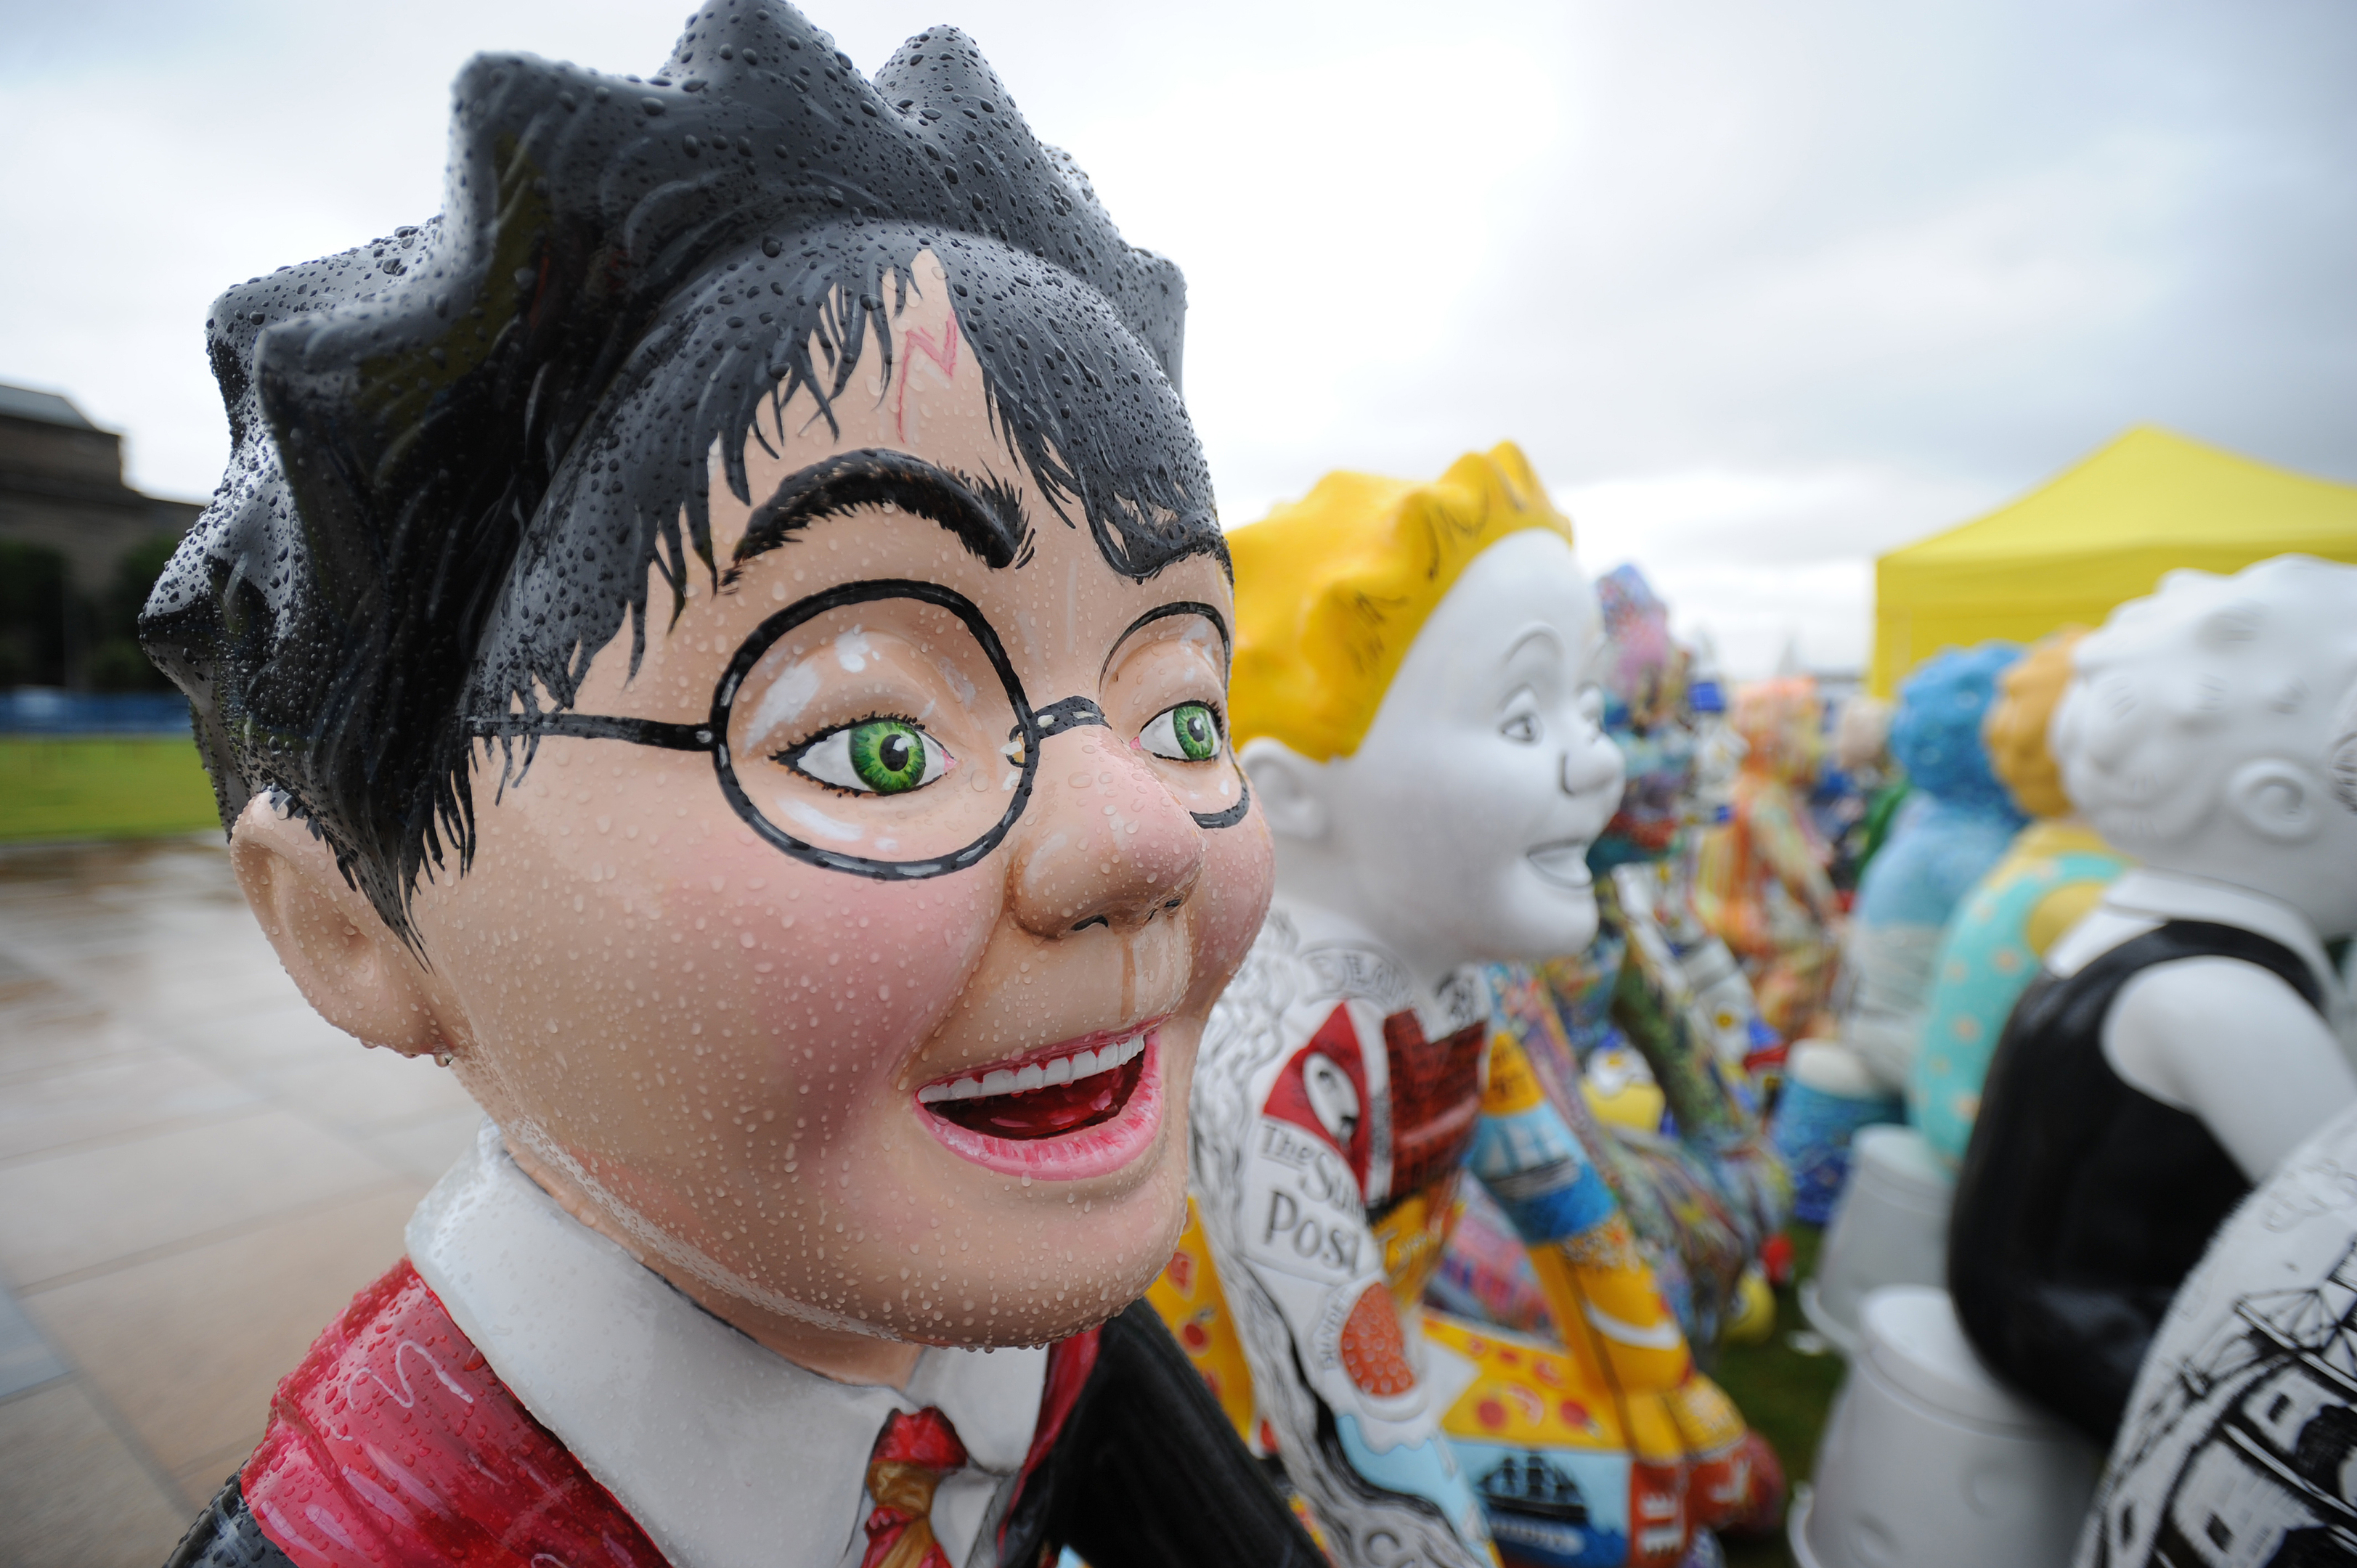 Wullie no stay? Time to say cheerio to the bucket trail.